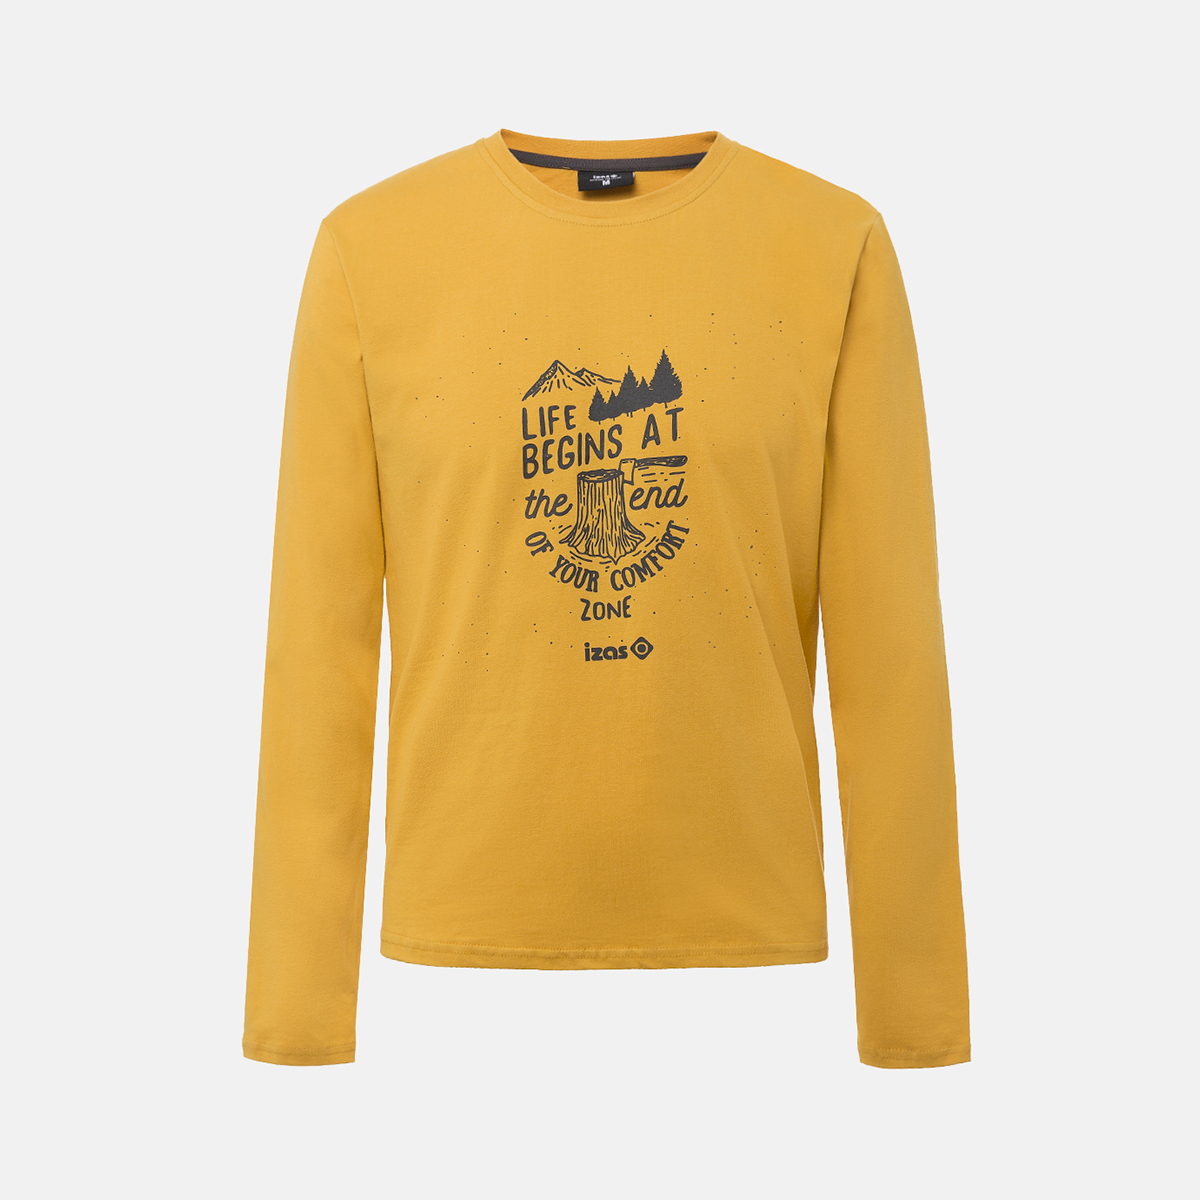 MAN'S AROSA T-SHIRT COTTON YELLOW